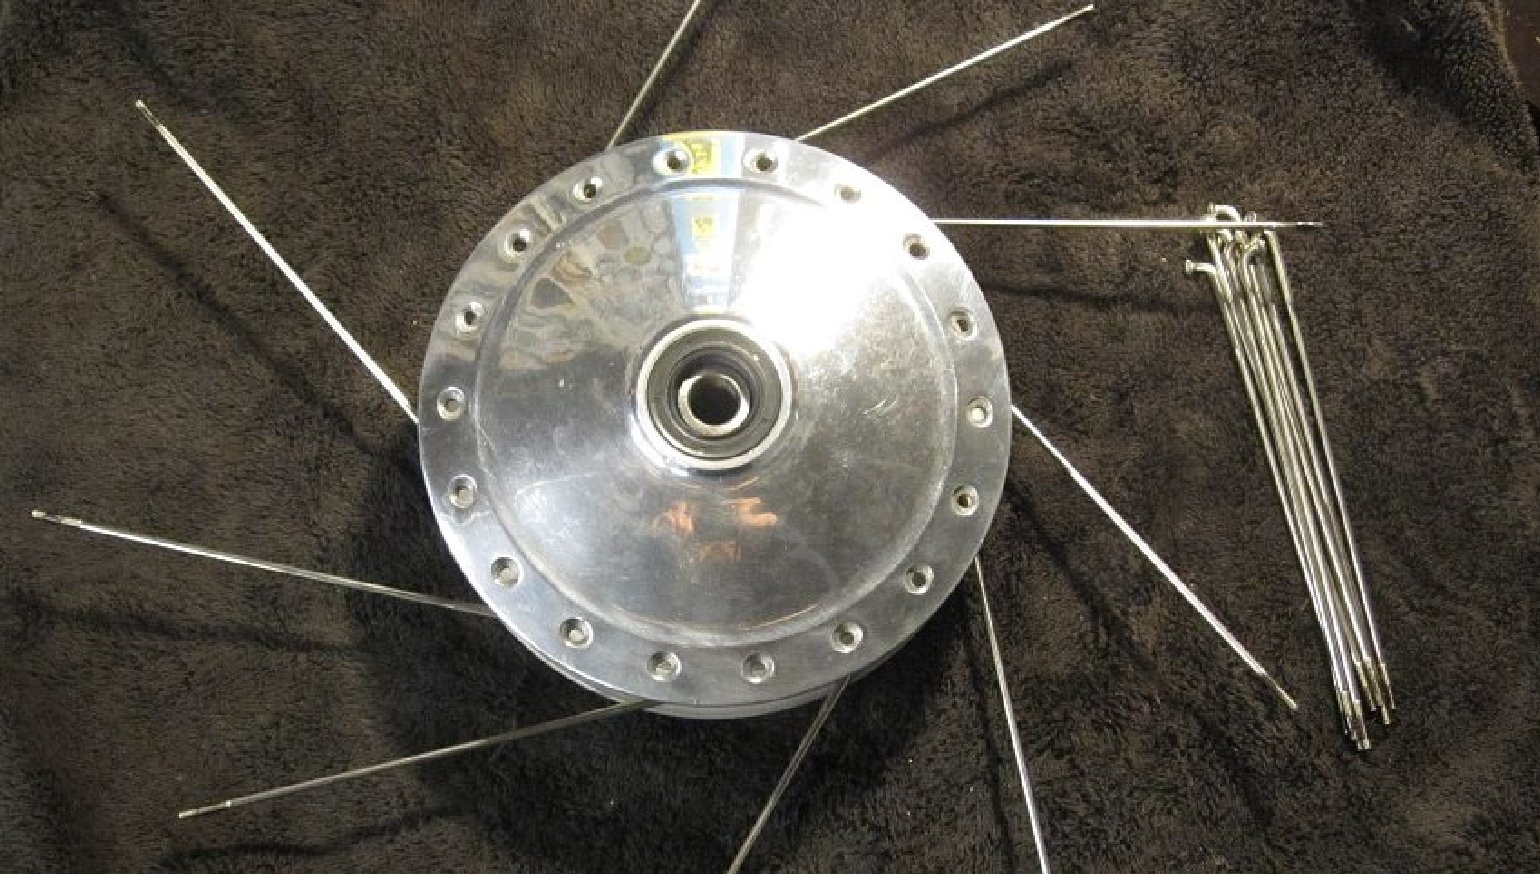 How to lace and true motorcycle wheels